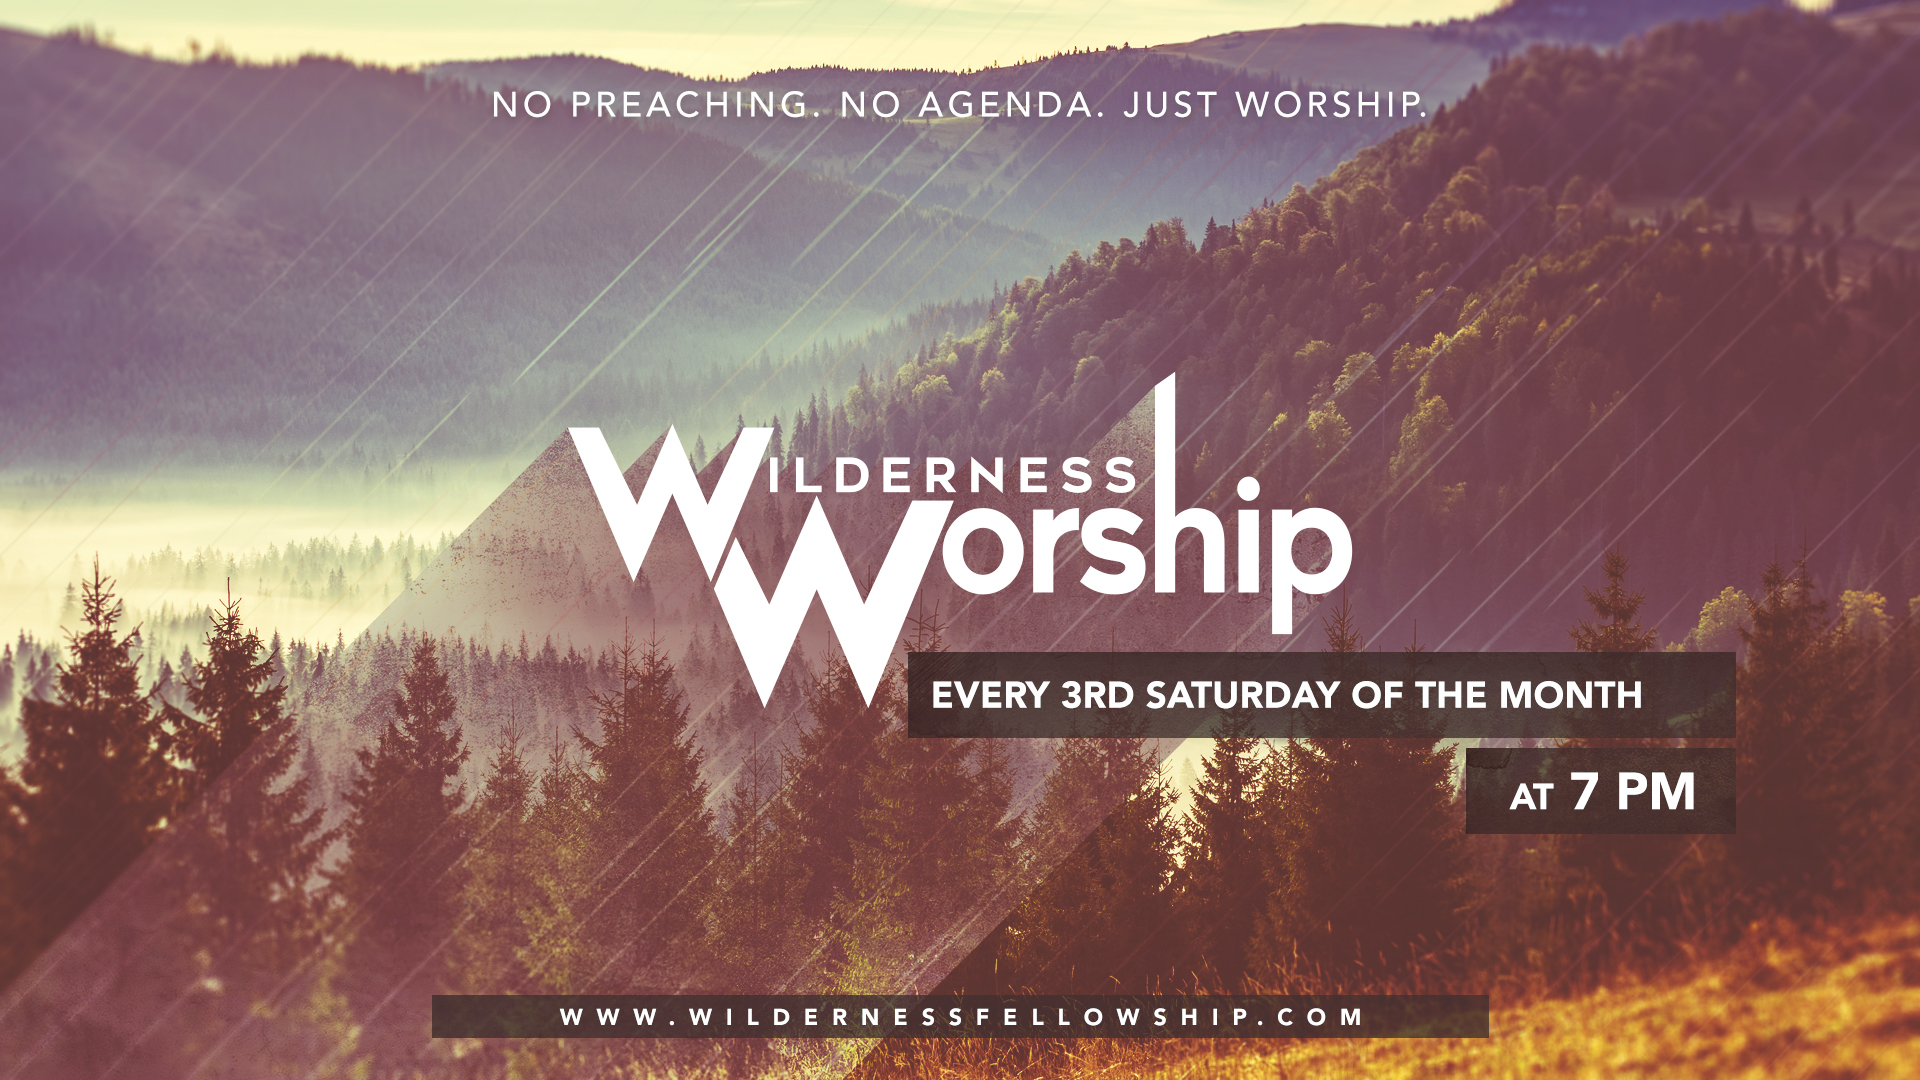 A night of Worship at the Wilderness Fellowship Ministries